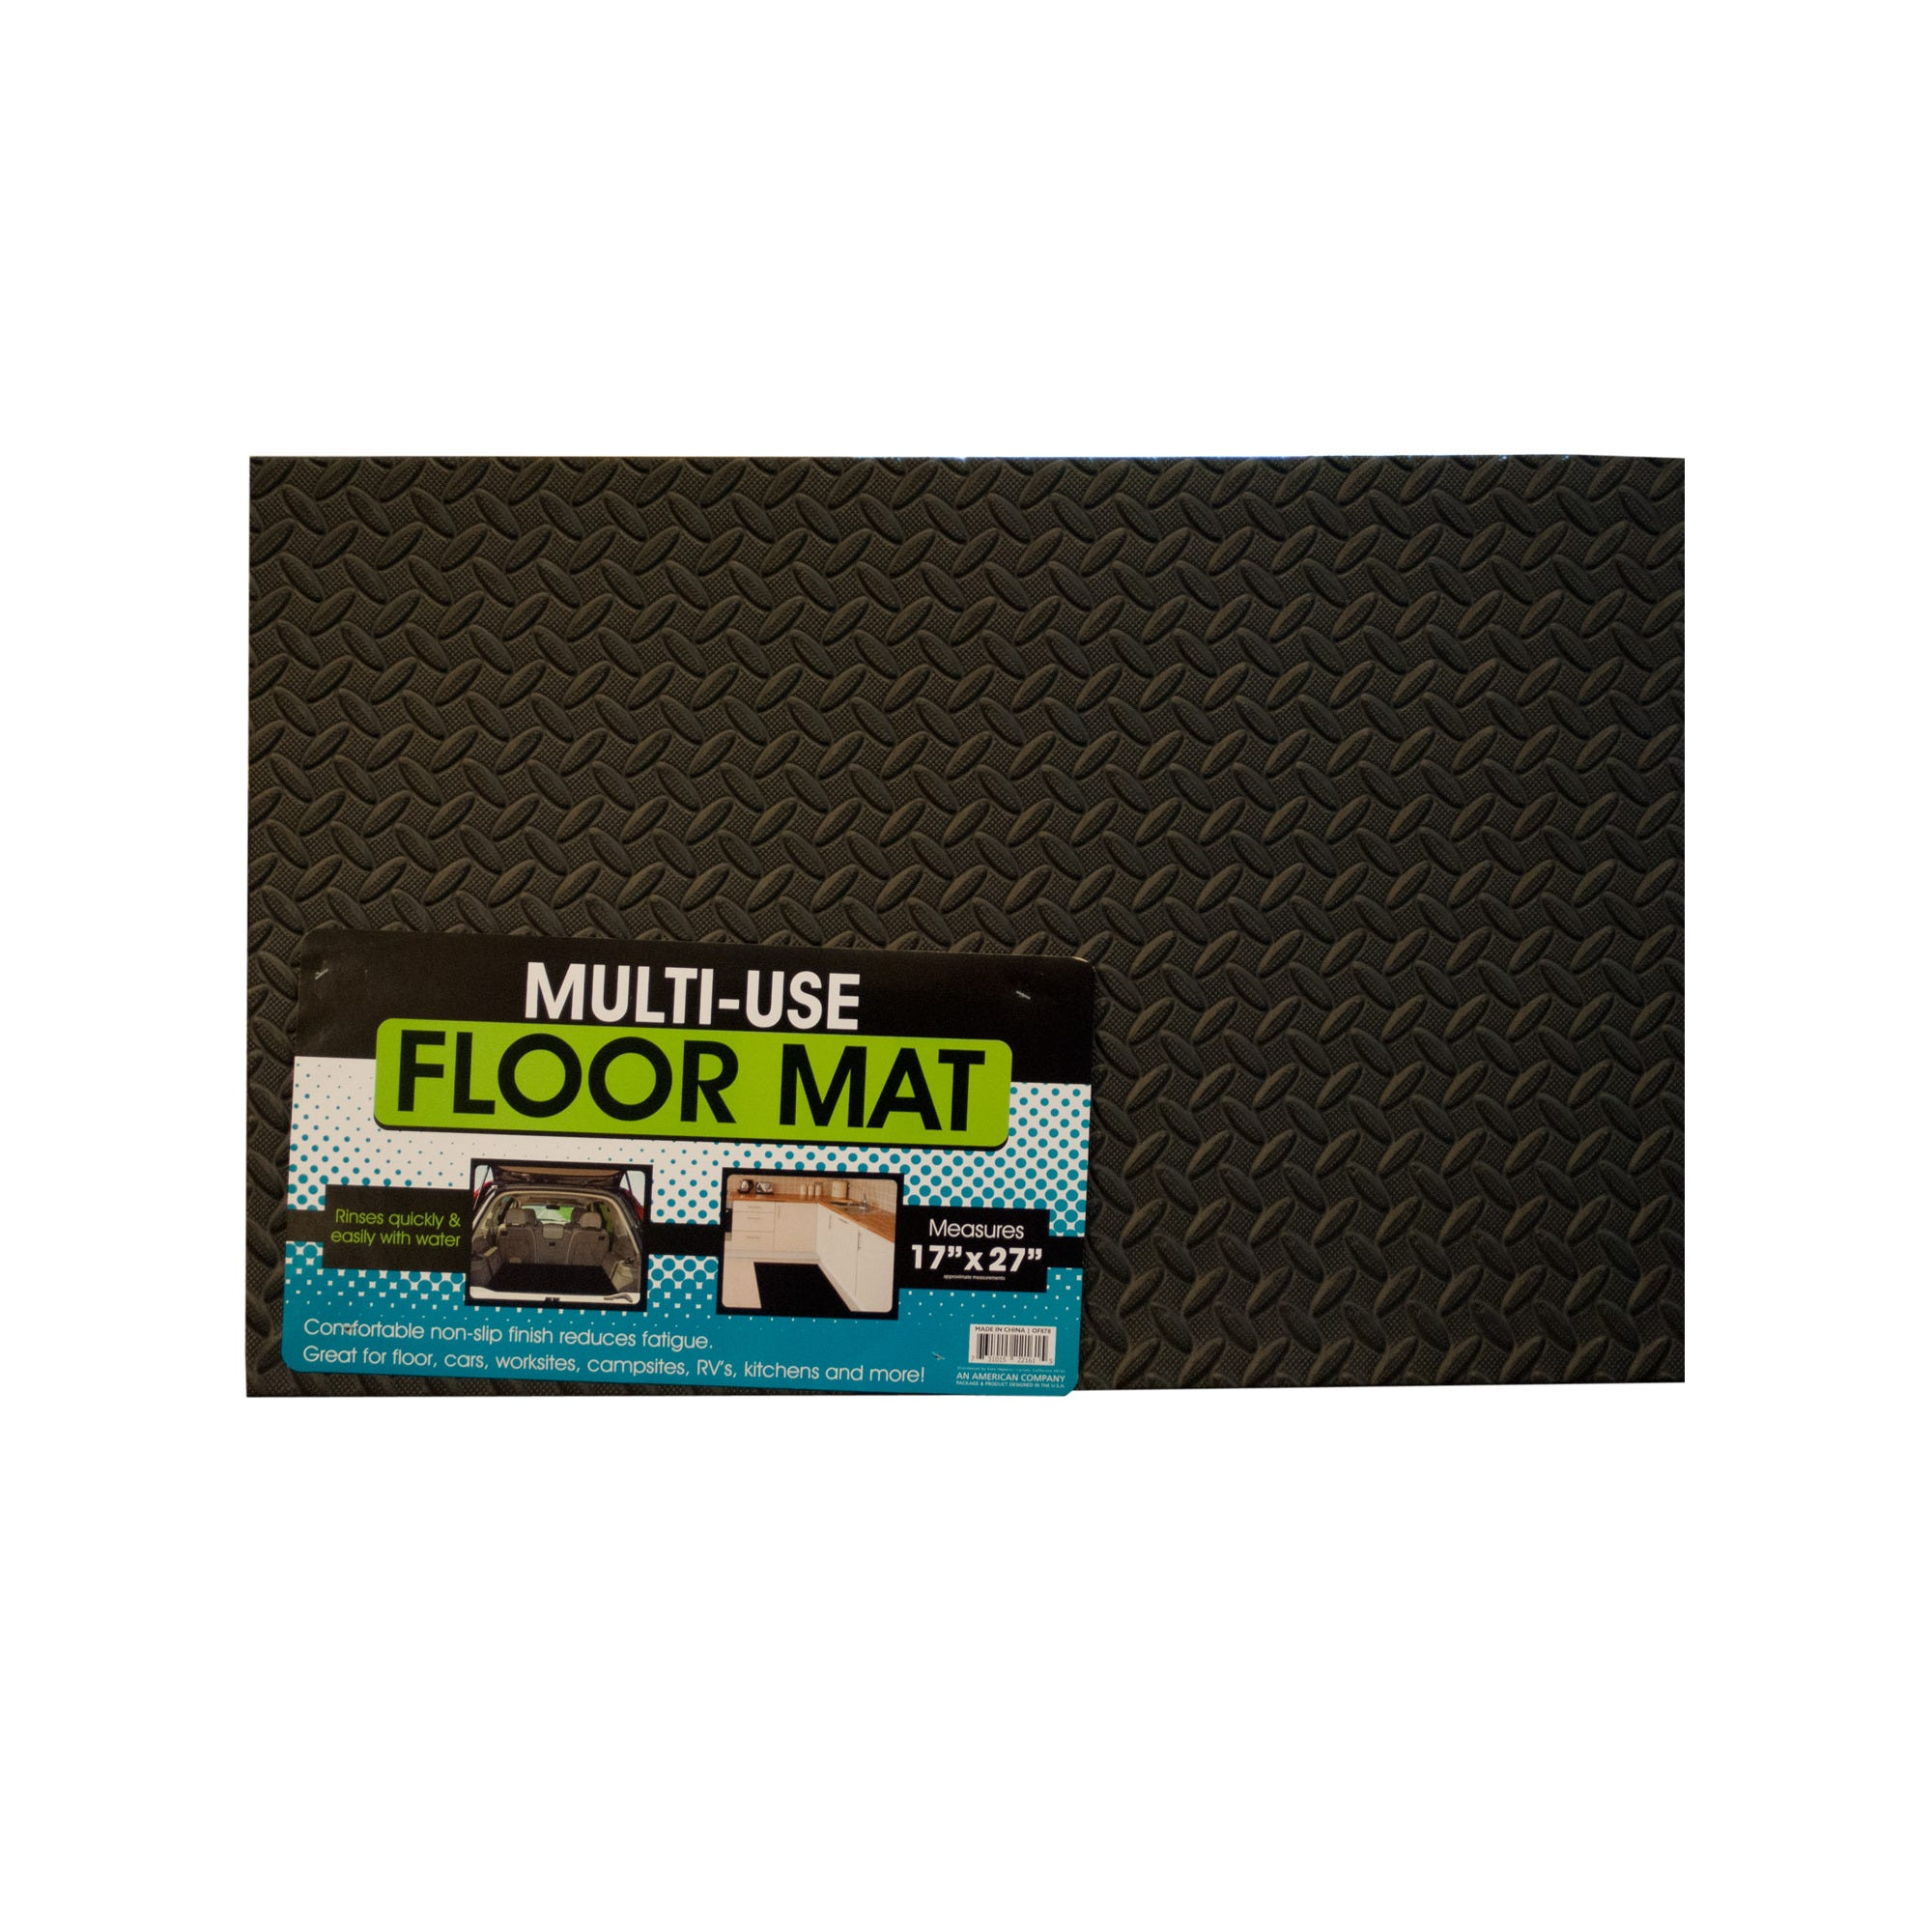 Non Slip Kitchen Floor Mats Wholesale Floor Mat Now Available At Wholesale Central Items 1 40